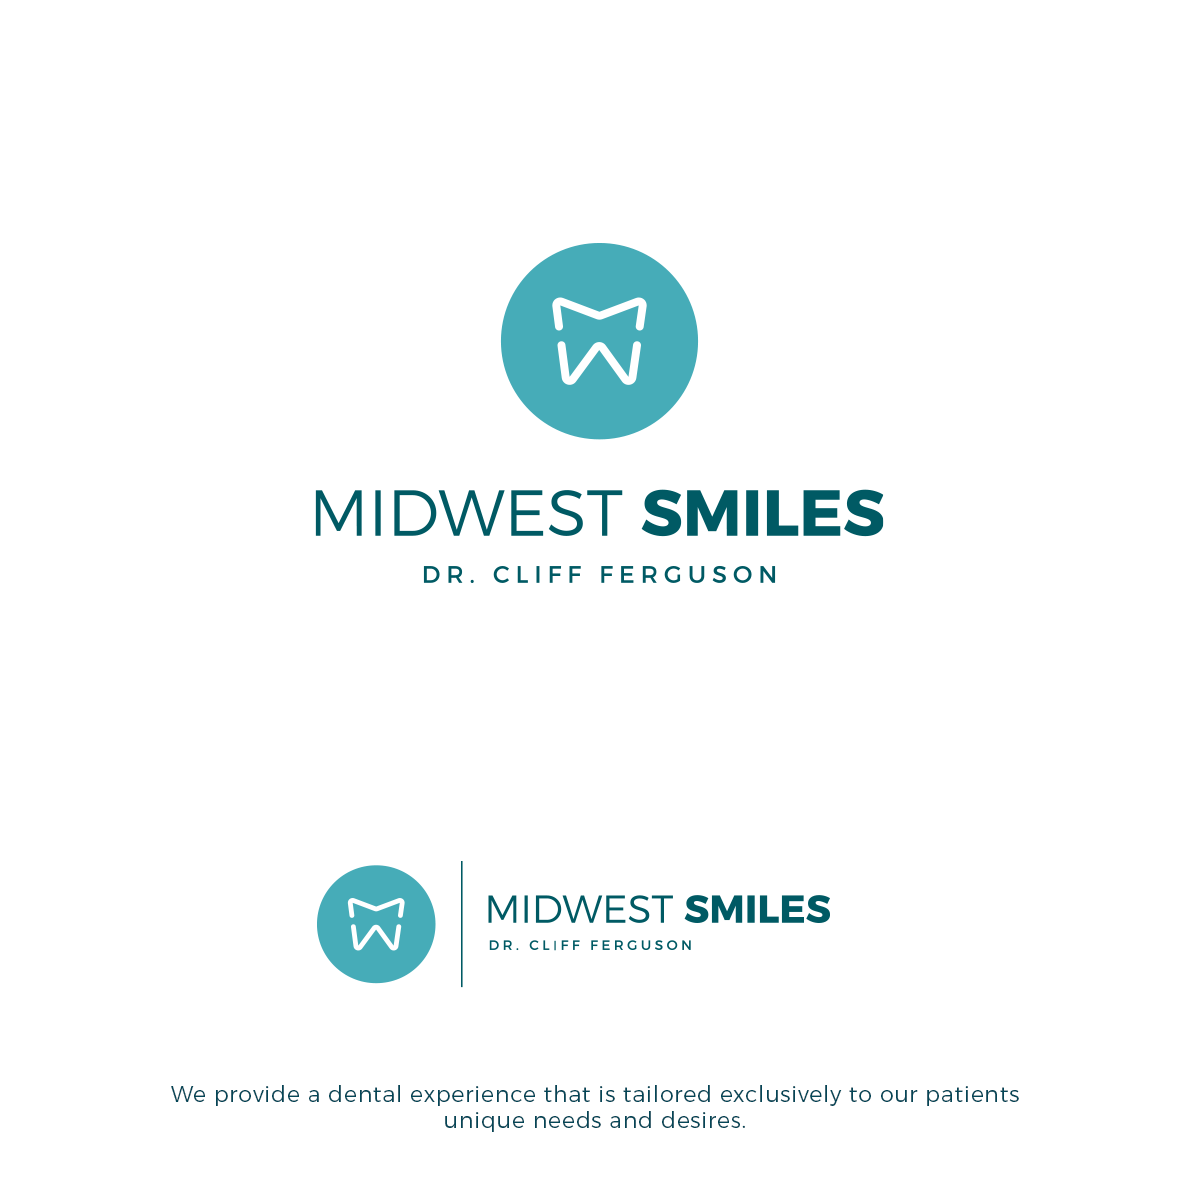 Midwest Smiles